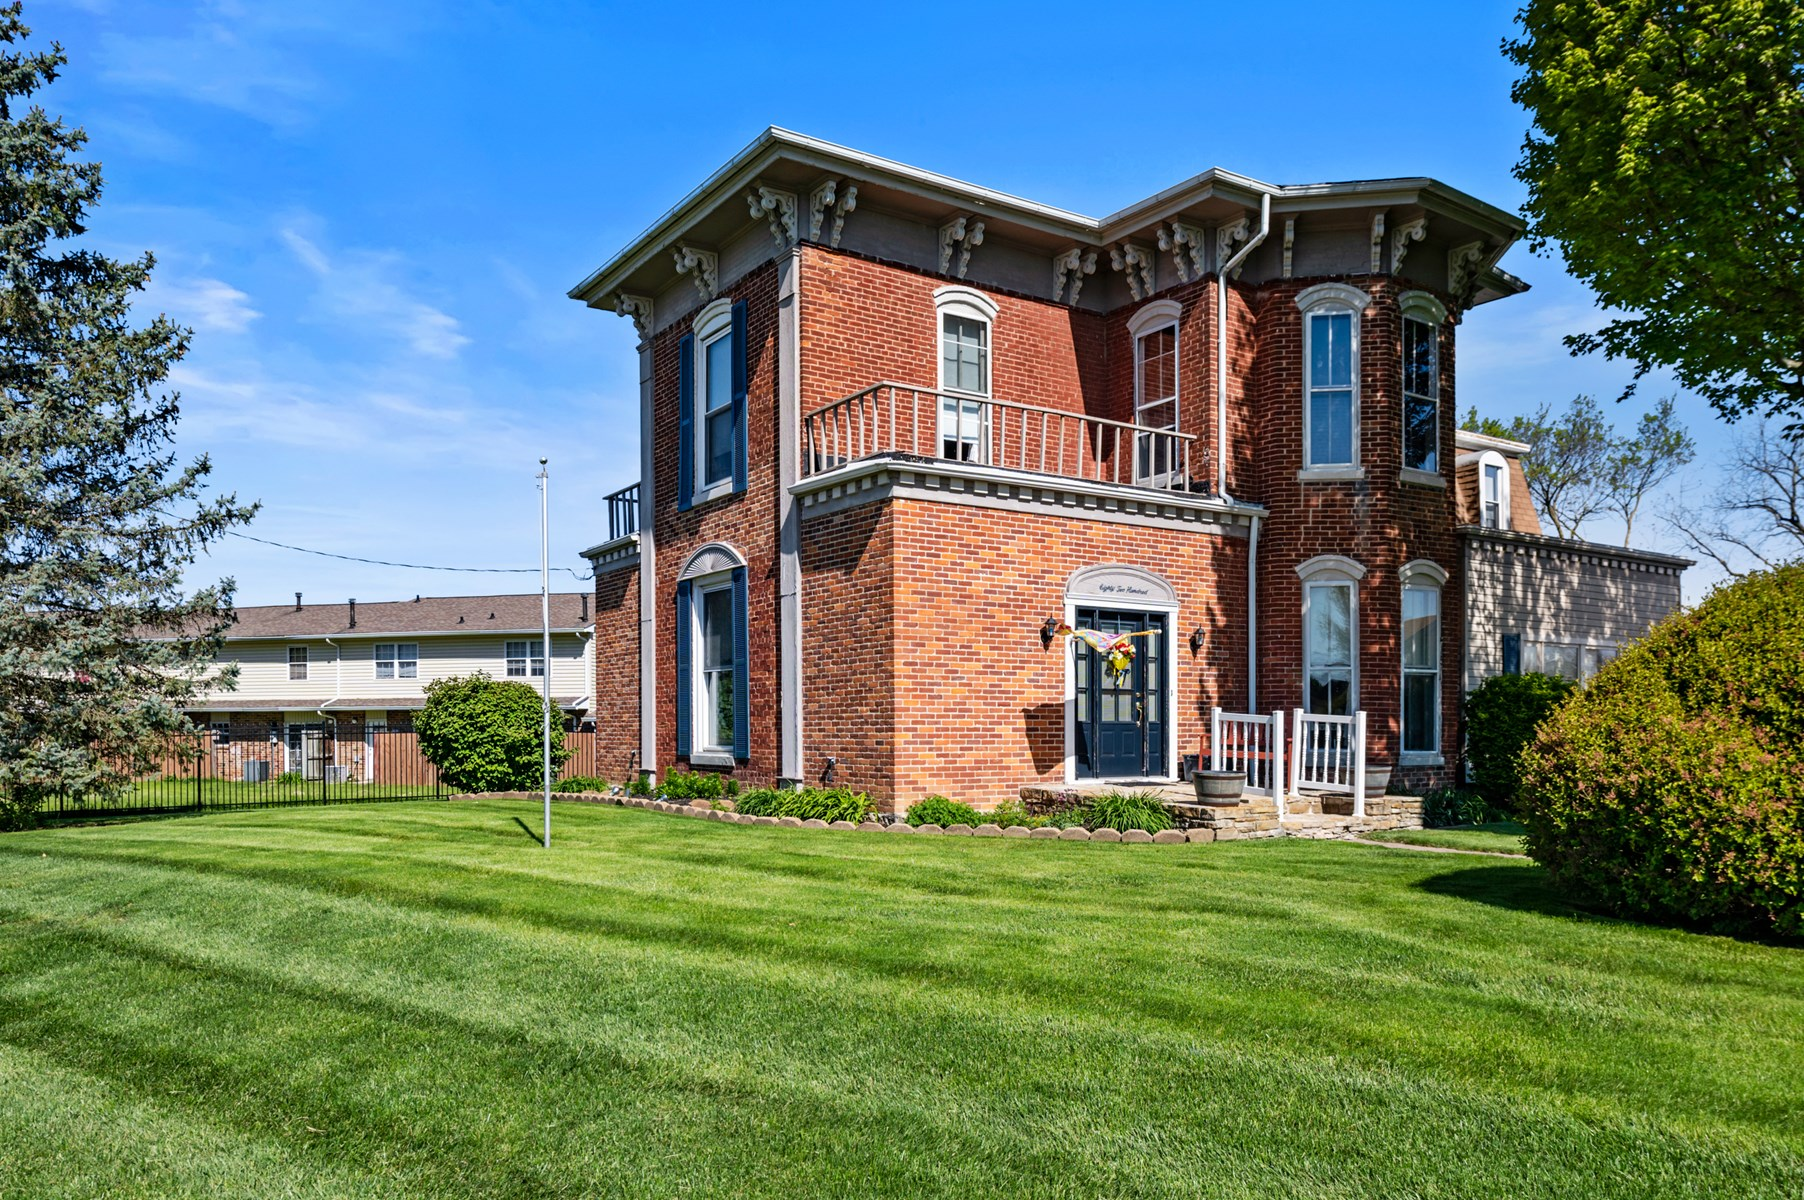 Home for Sale Yorktown, Indiana